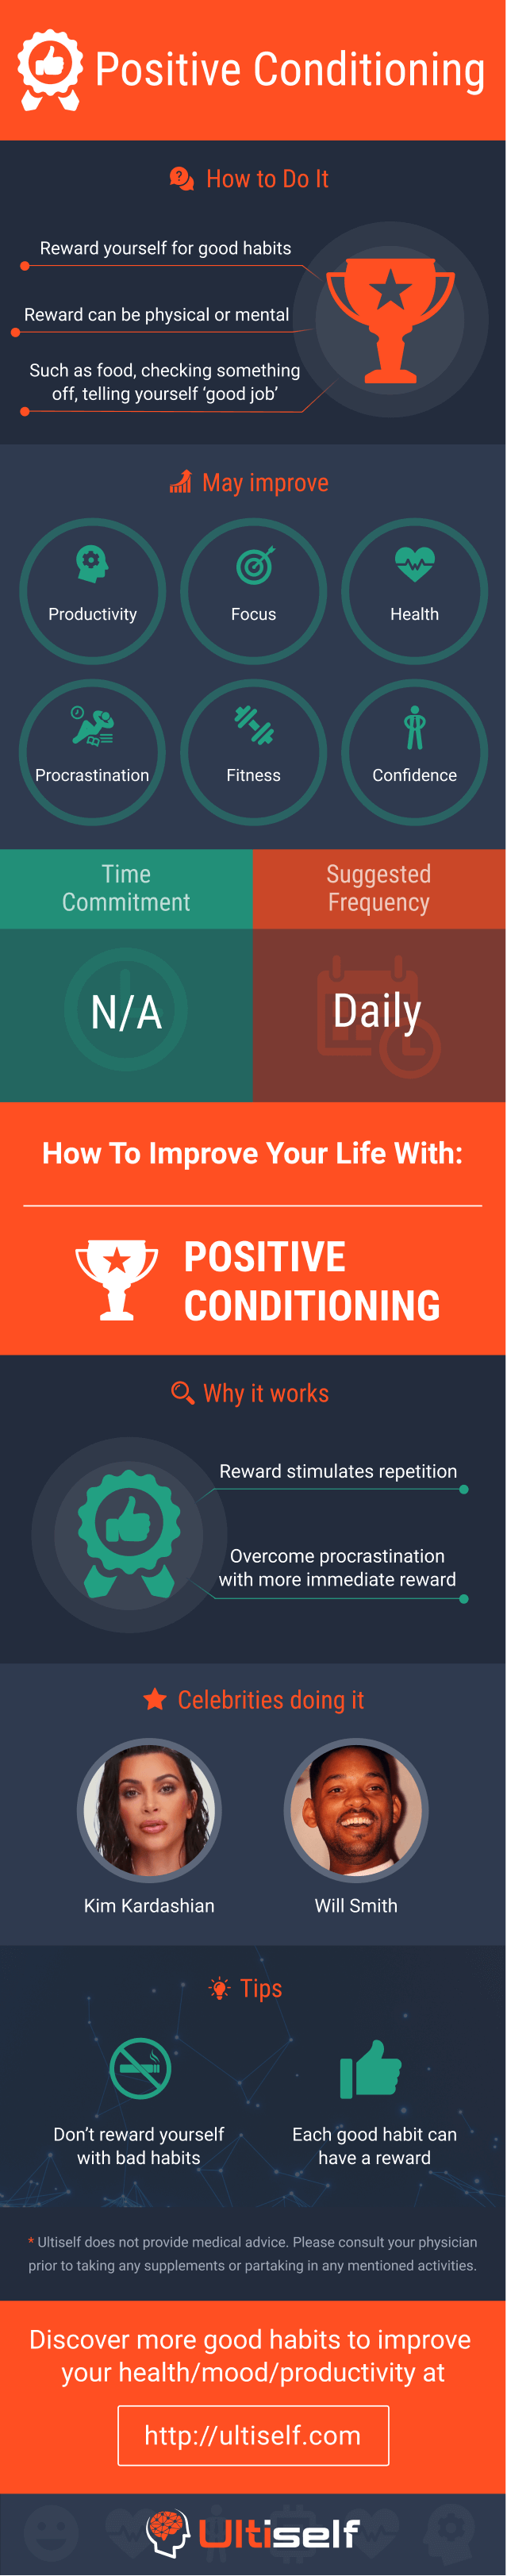 Positive conditioning infographic